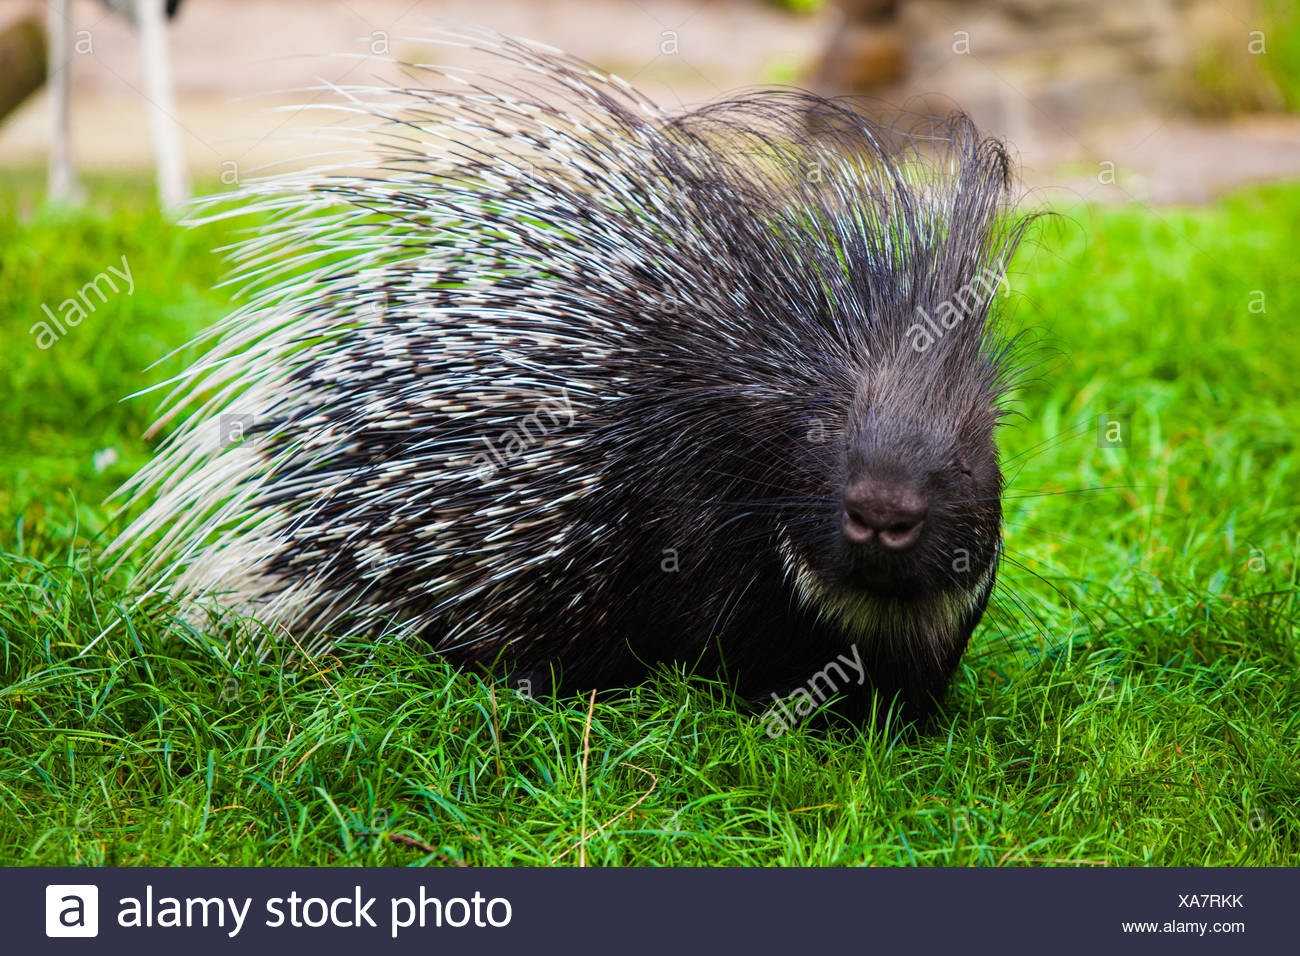 Porcupine on grass - Stock Image